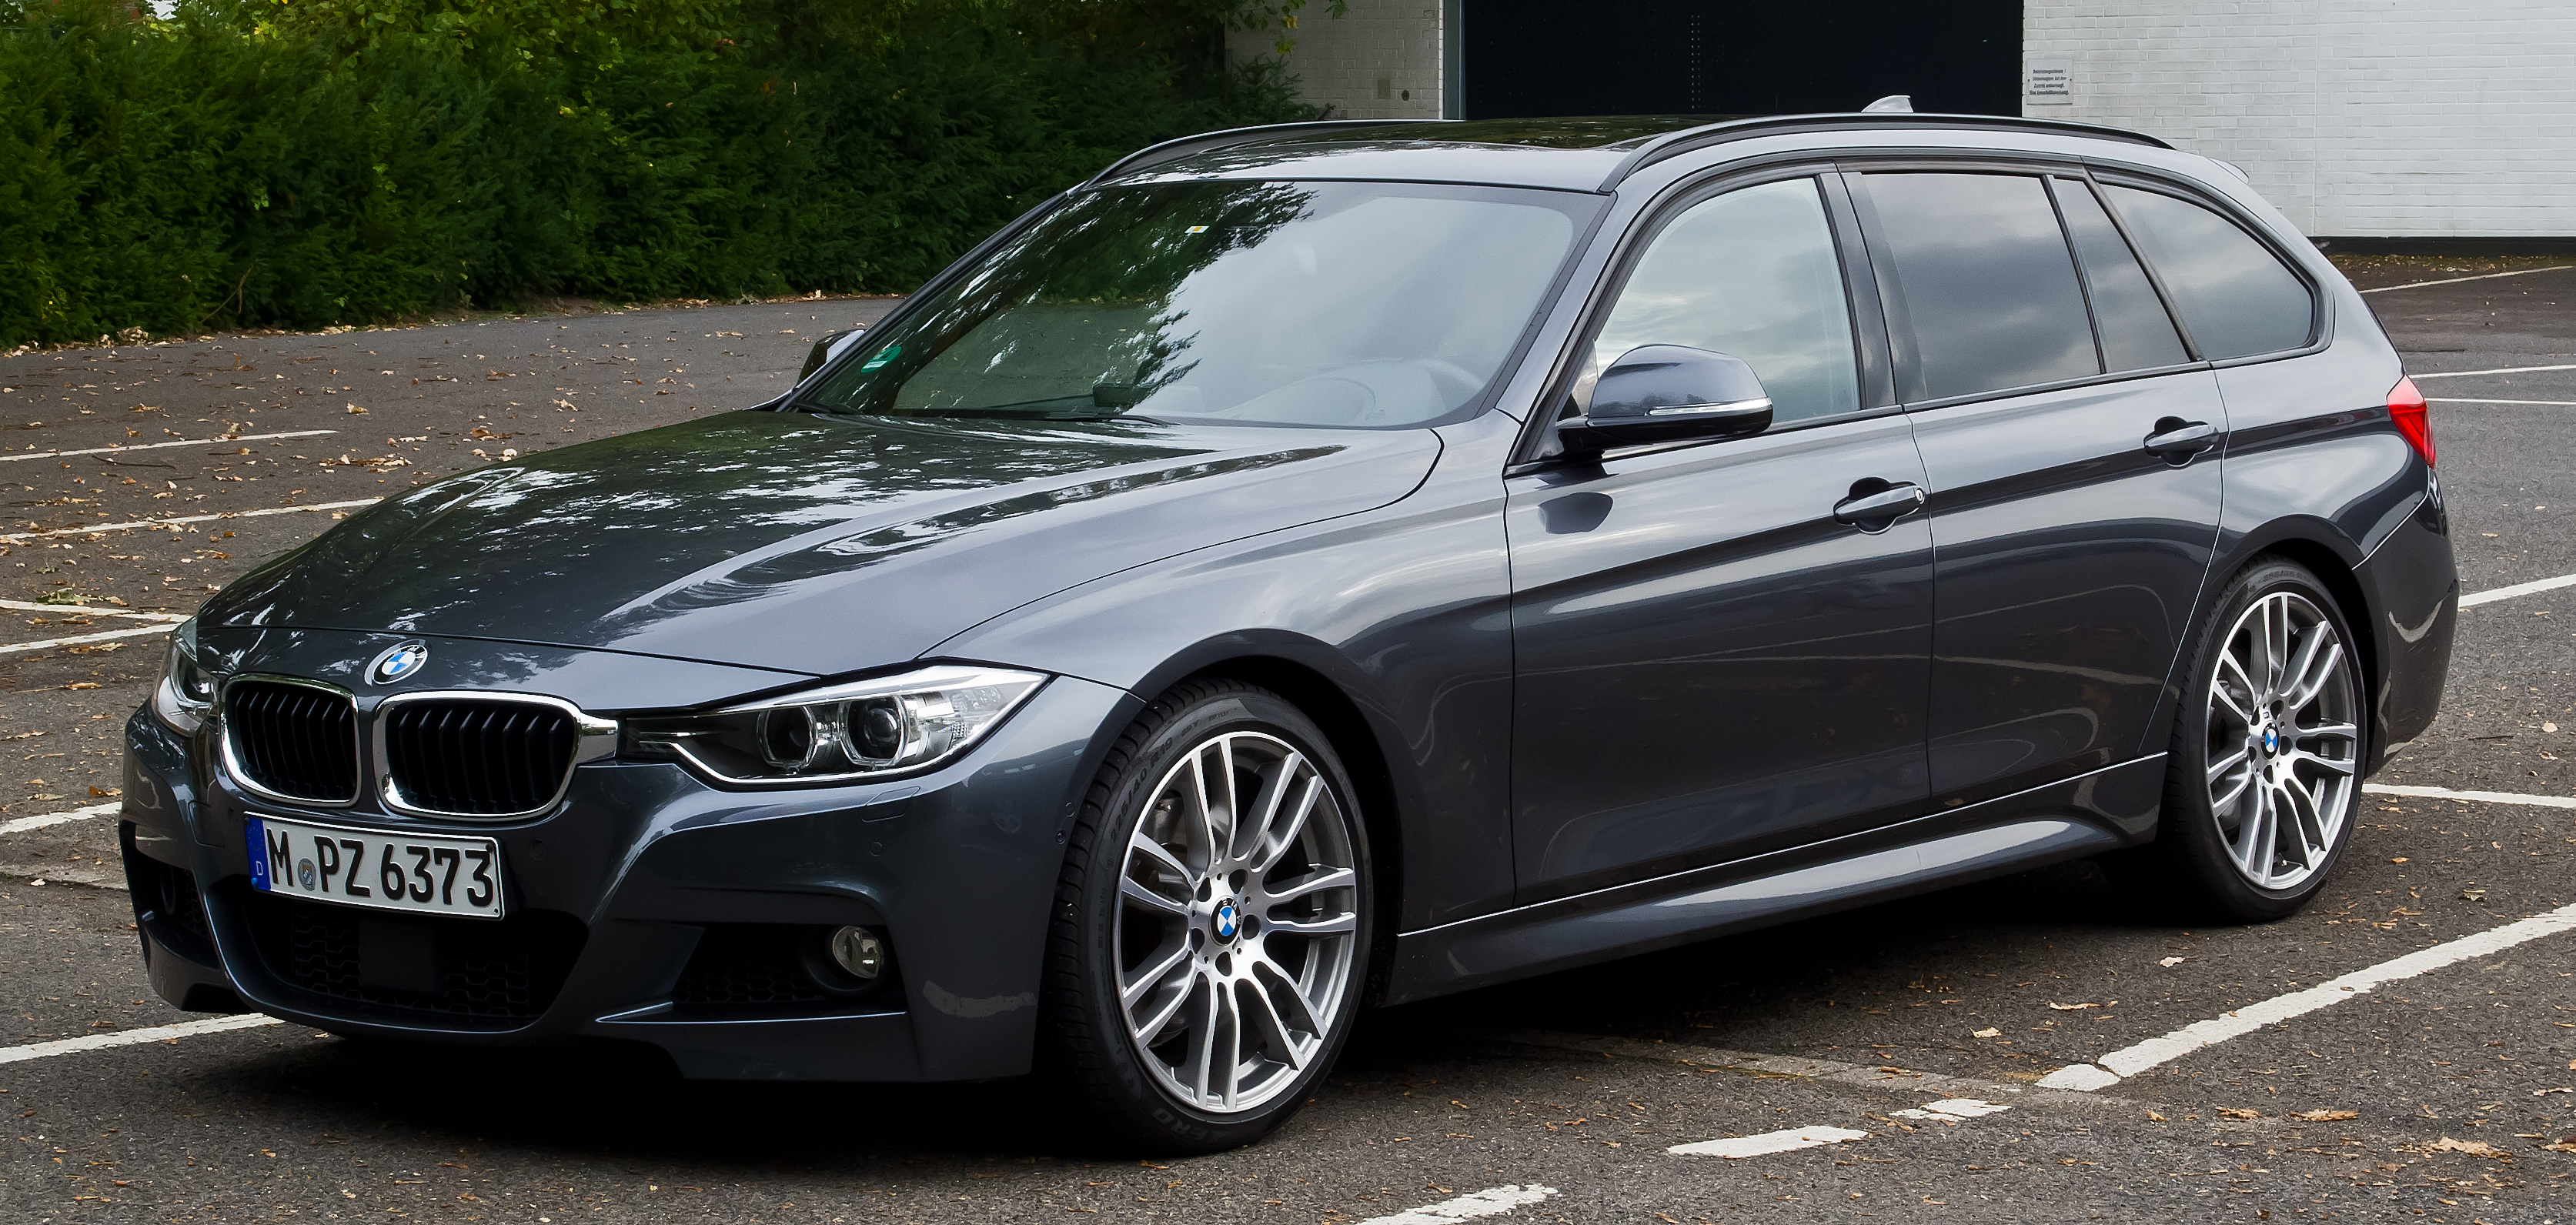 datei bmw 330d touring m sportpaket f31 frontansicht 5 oktober 2013 m wikipedia. Black Bedroom Furniture Sets. Home Design Ideas